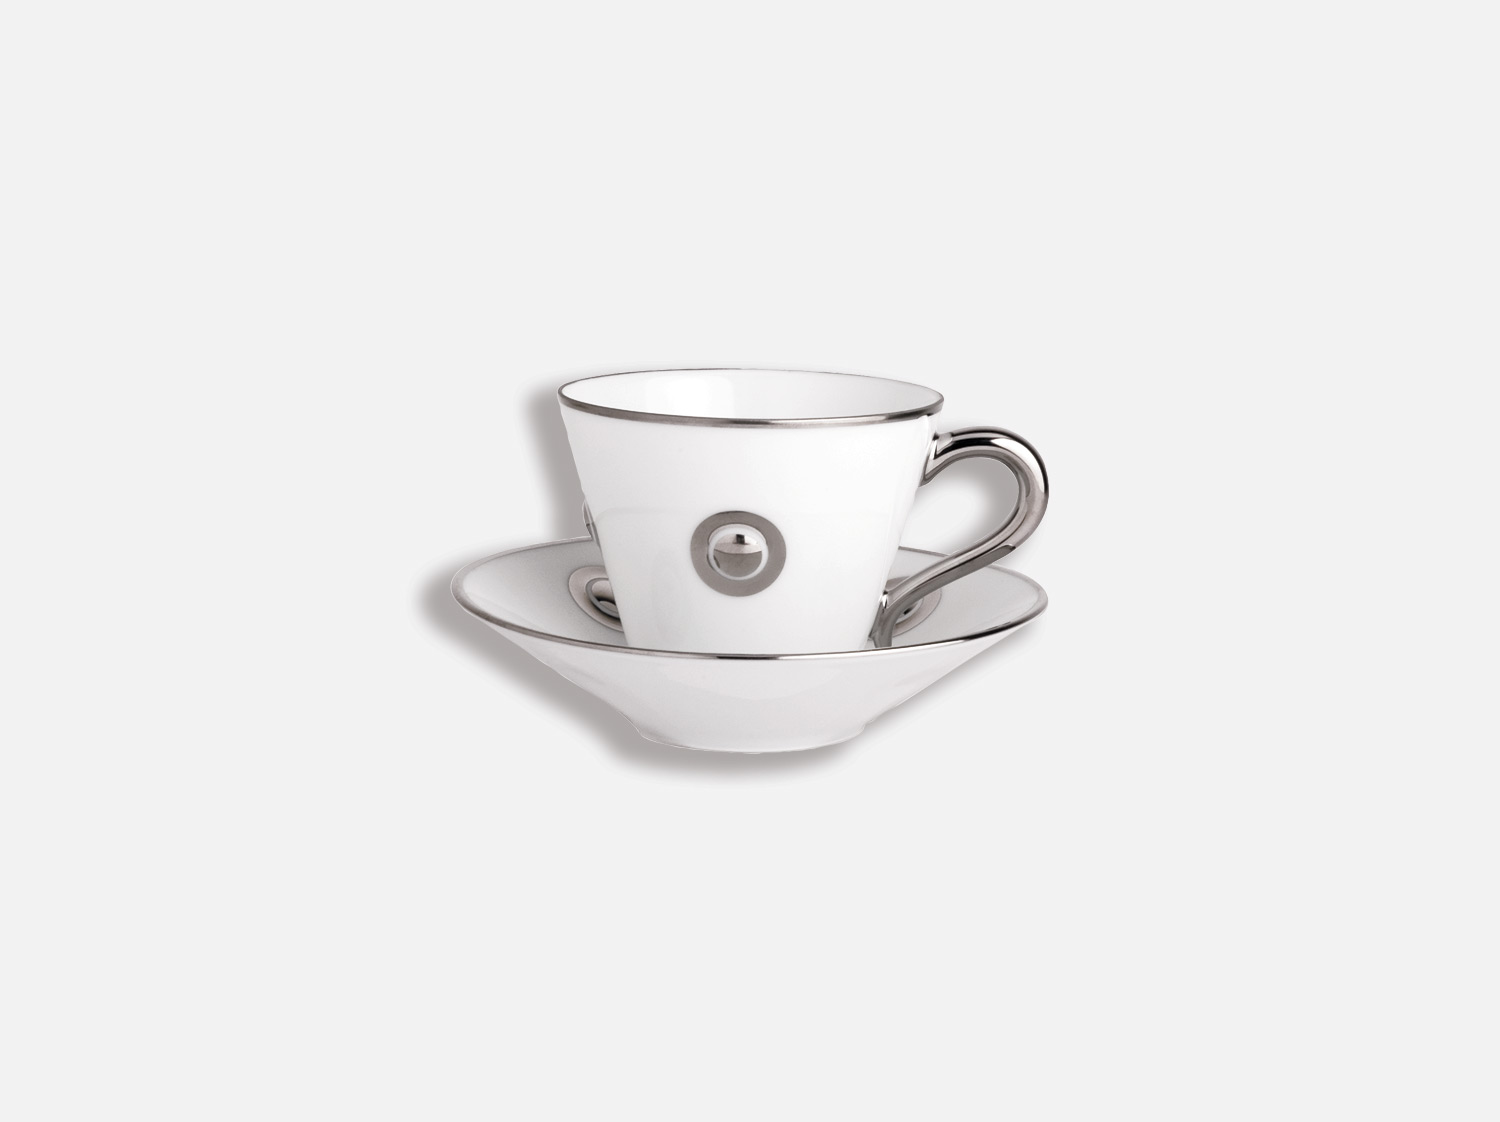 China Espresso cup and saucer 4.5 oz of the collection Ithaque platinum | Bernardaud